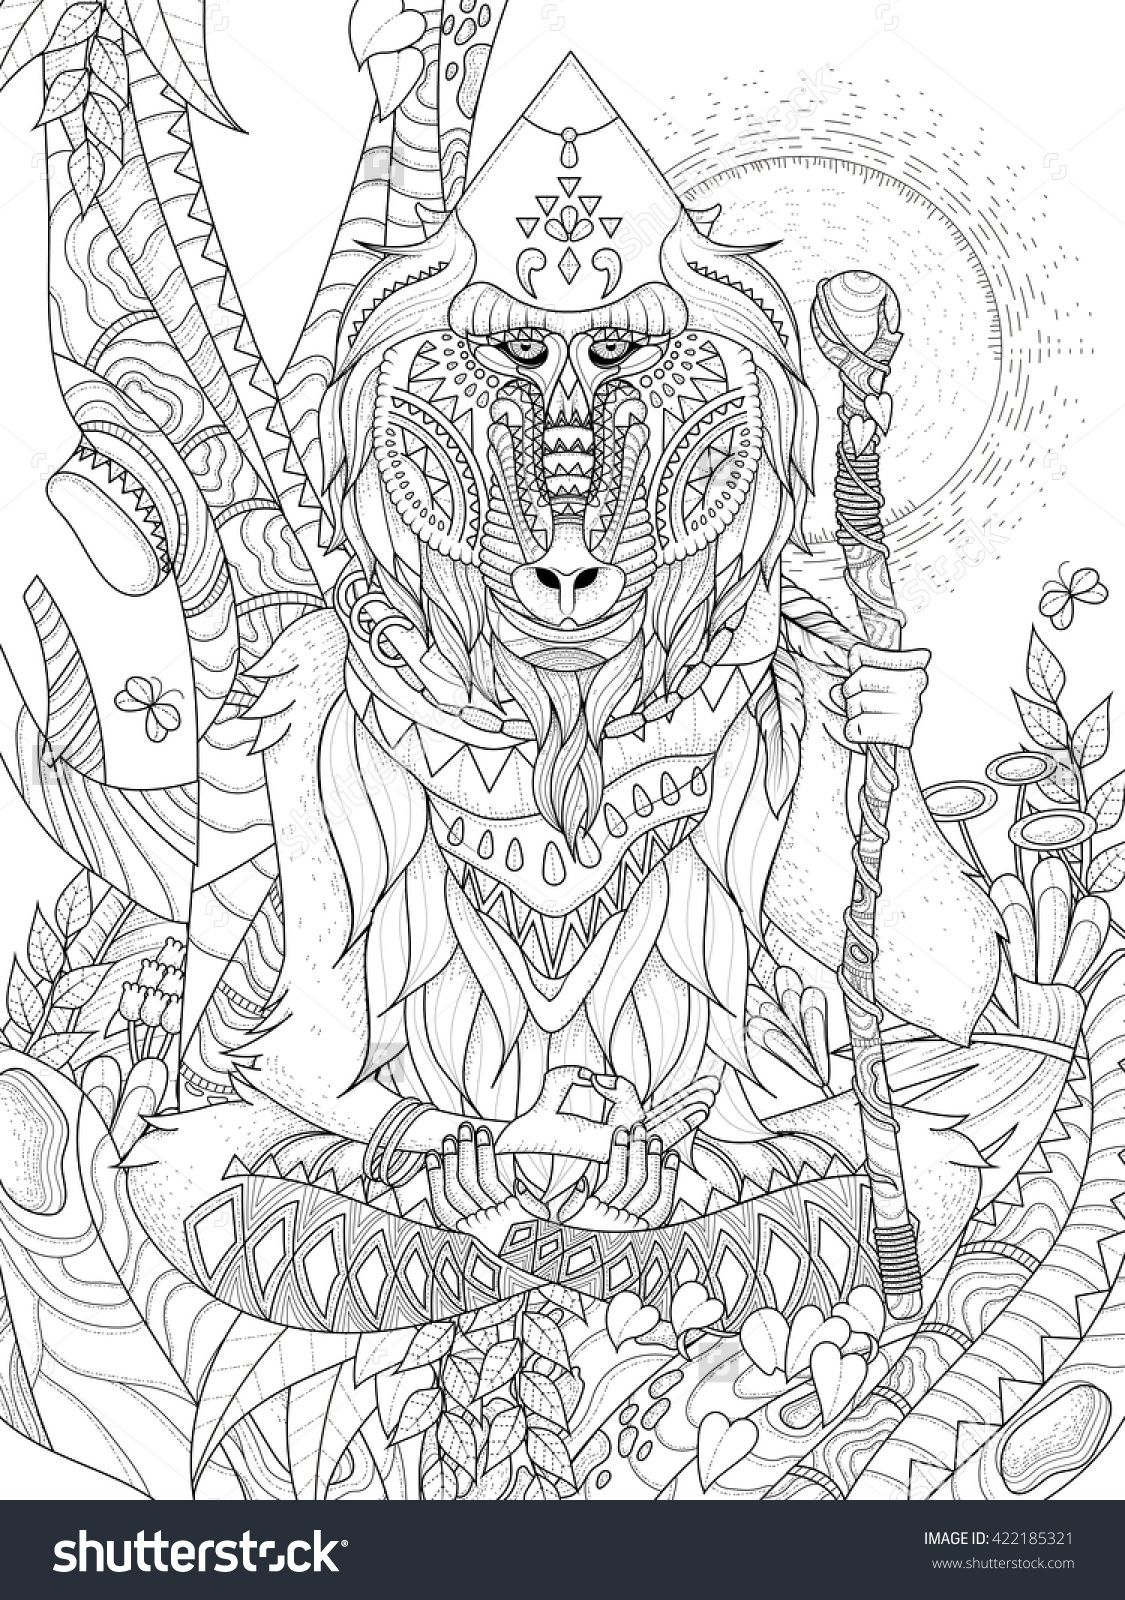 Wisdom elder baboon crossed legged in tree adult coloring page